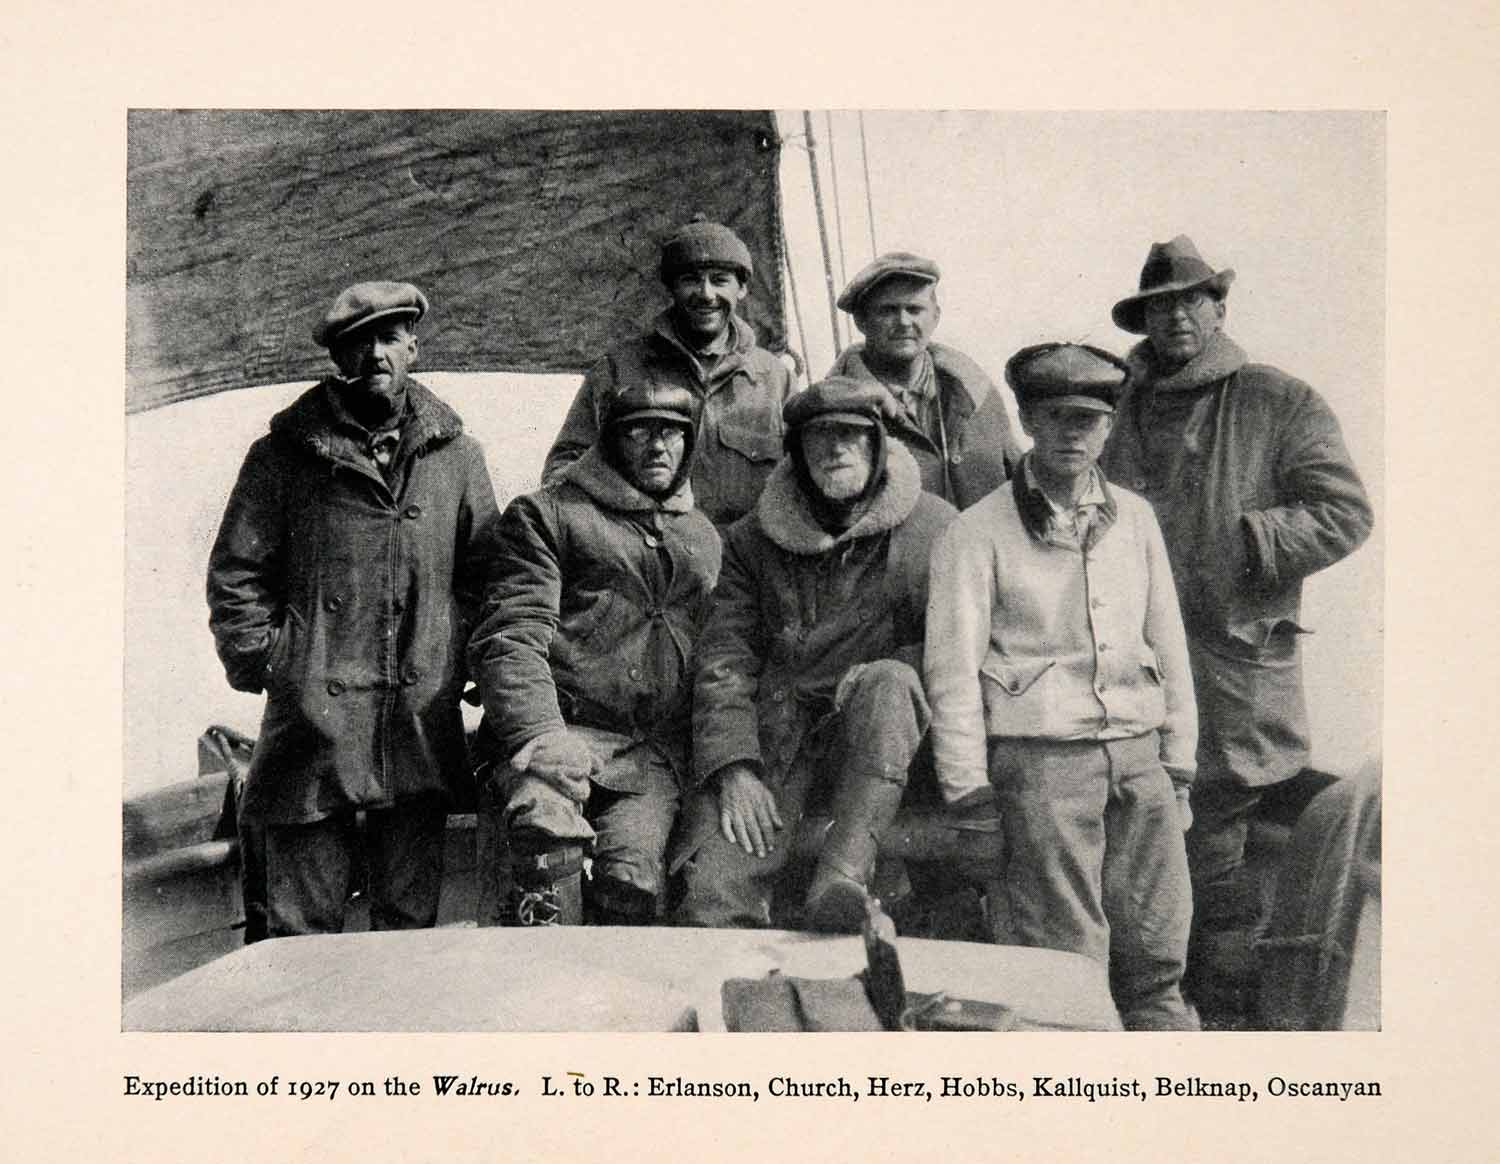 1930 print greenland expedition walrus ship explorers research